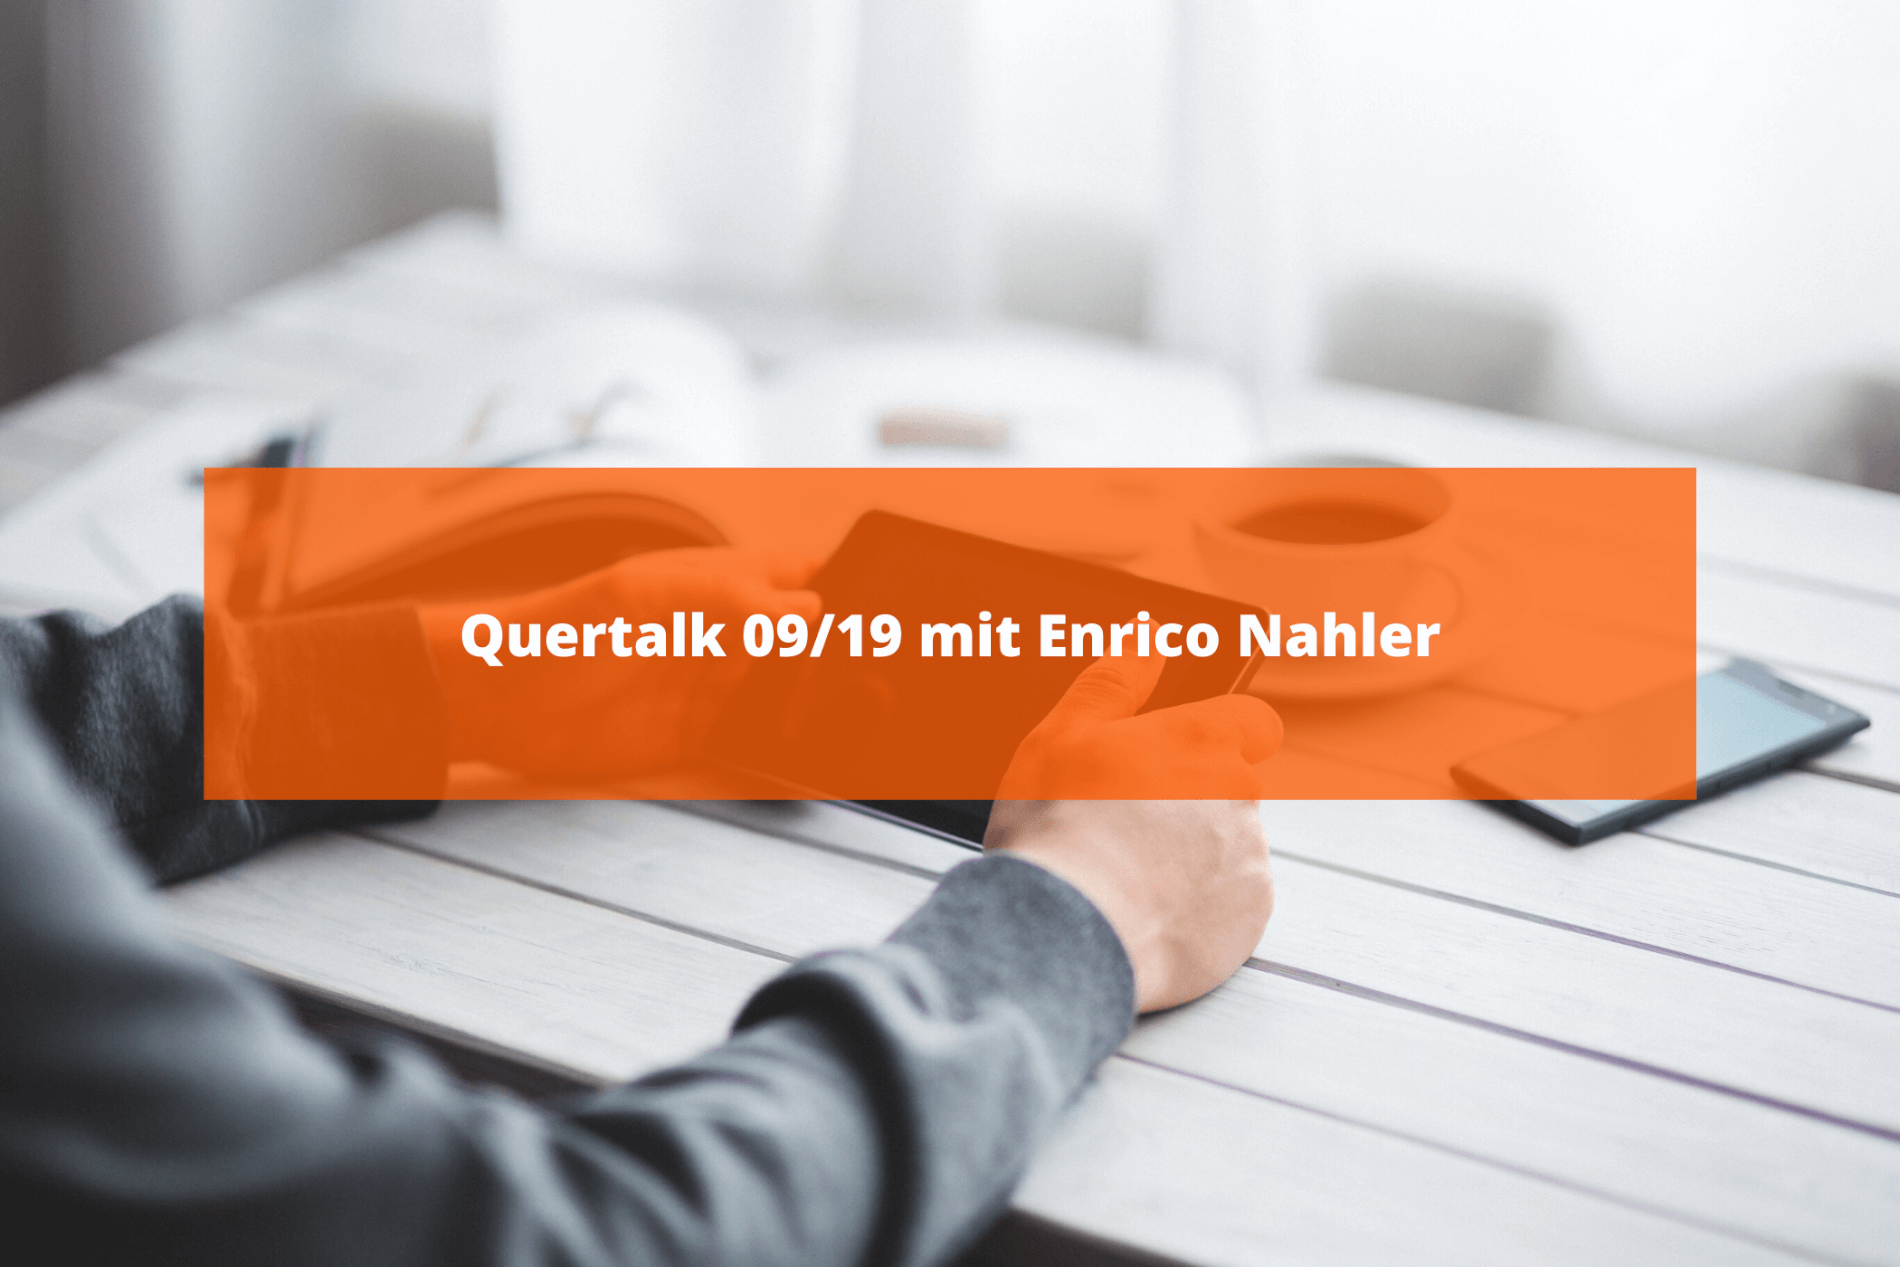 Quertalk 09/19 mit Enrico Nahler - Lost and Found Episode